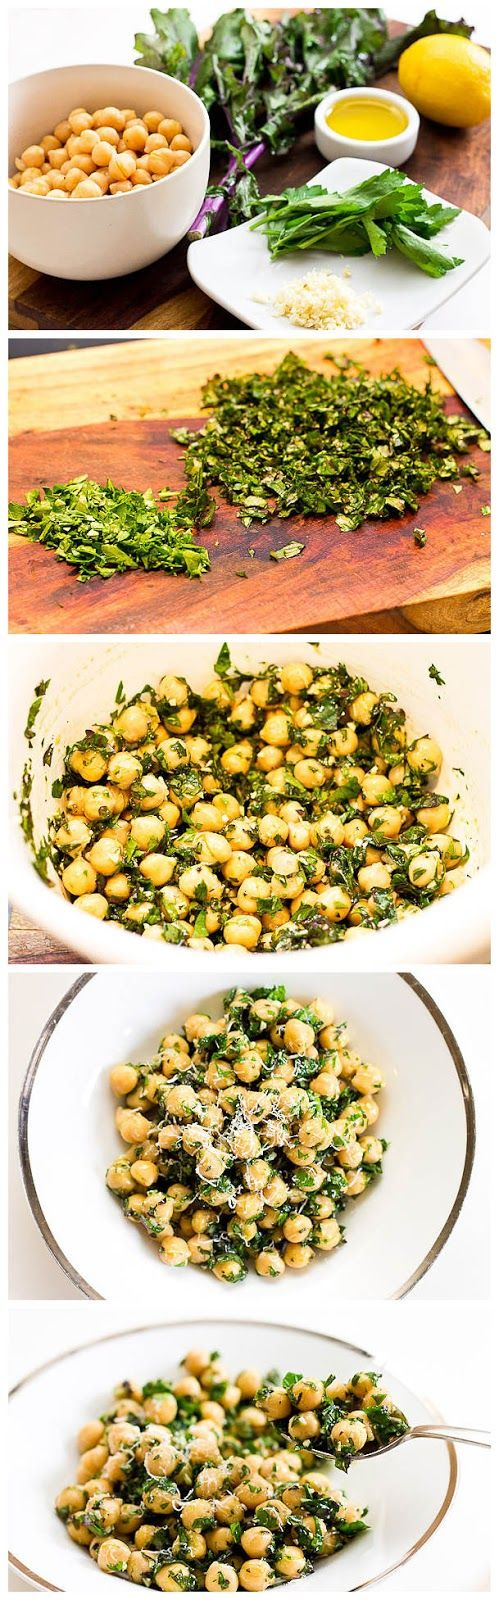 Ingredients: 1 can chickpeas, rinsed and drained 3-4 leaves kale, chopped 2 tablespoons fresh parsley, chopped 2 tablespoons olive oil 1 clove garlic, chopped 1 lemon, juiced salt and pepper, to taste pecorino romano or parmesan cheese, grated to taste. #CSA